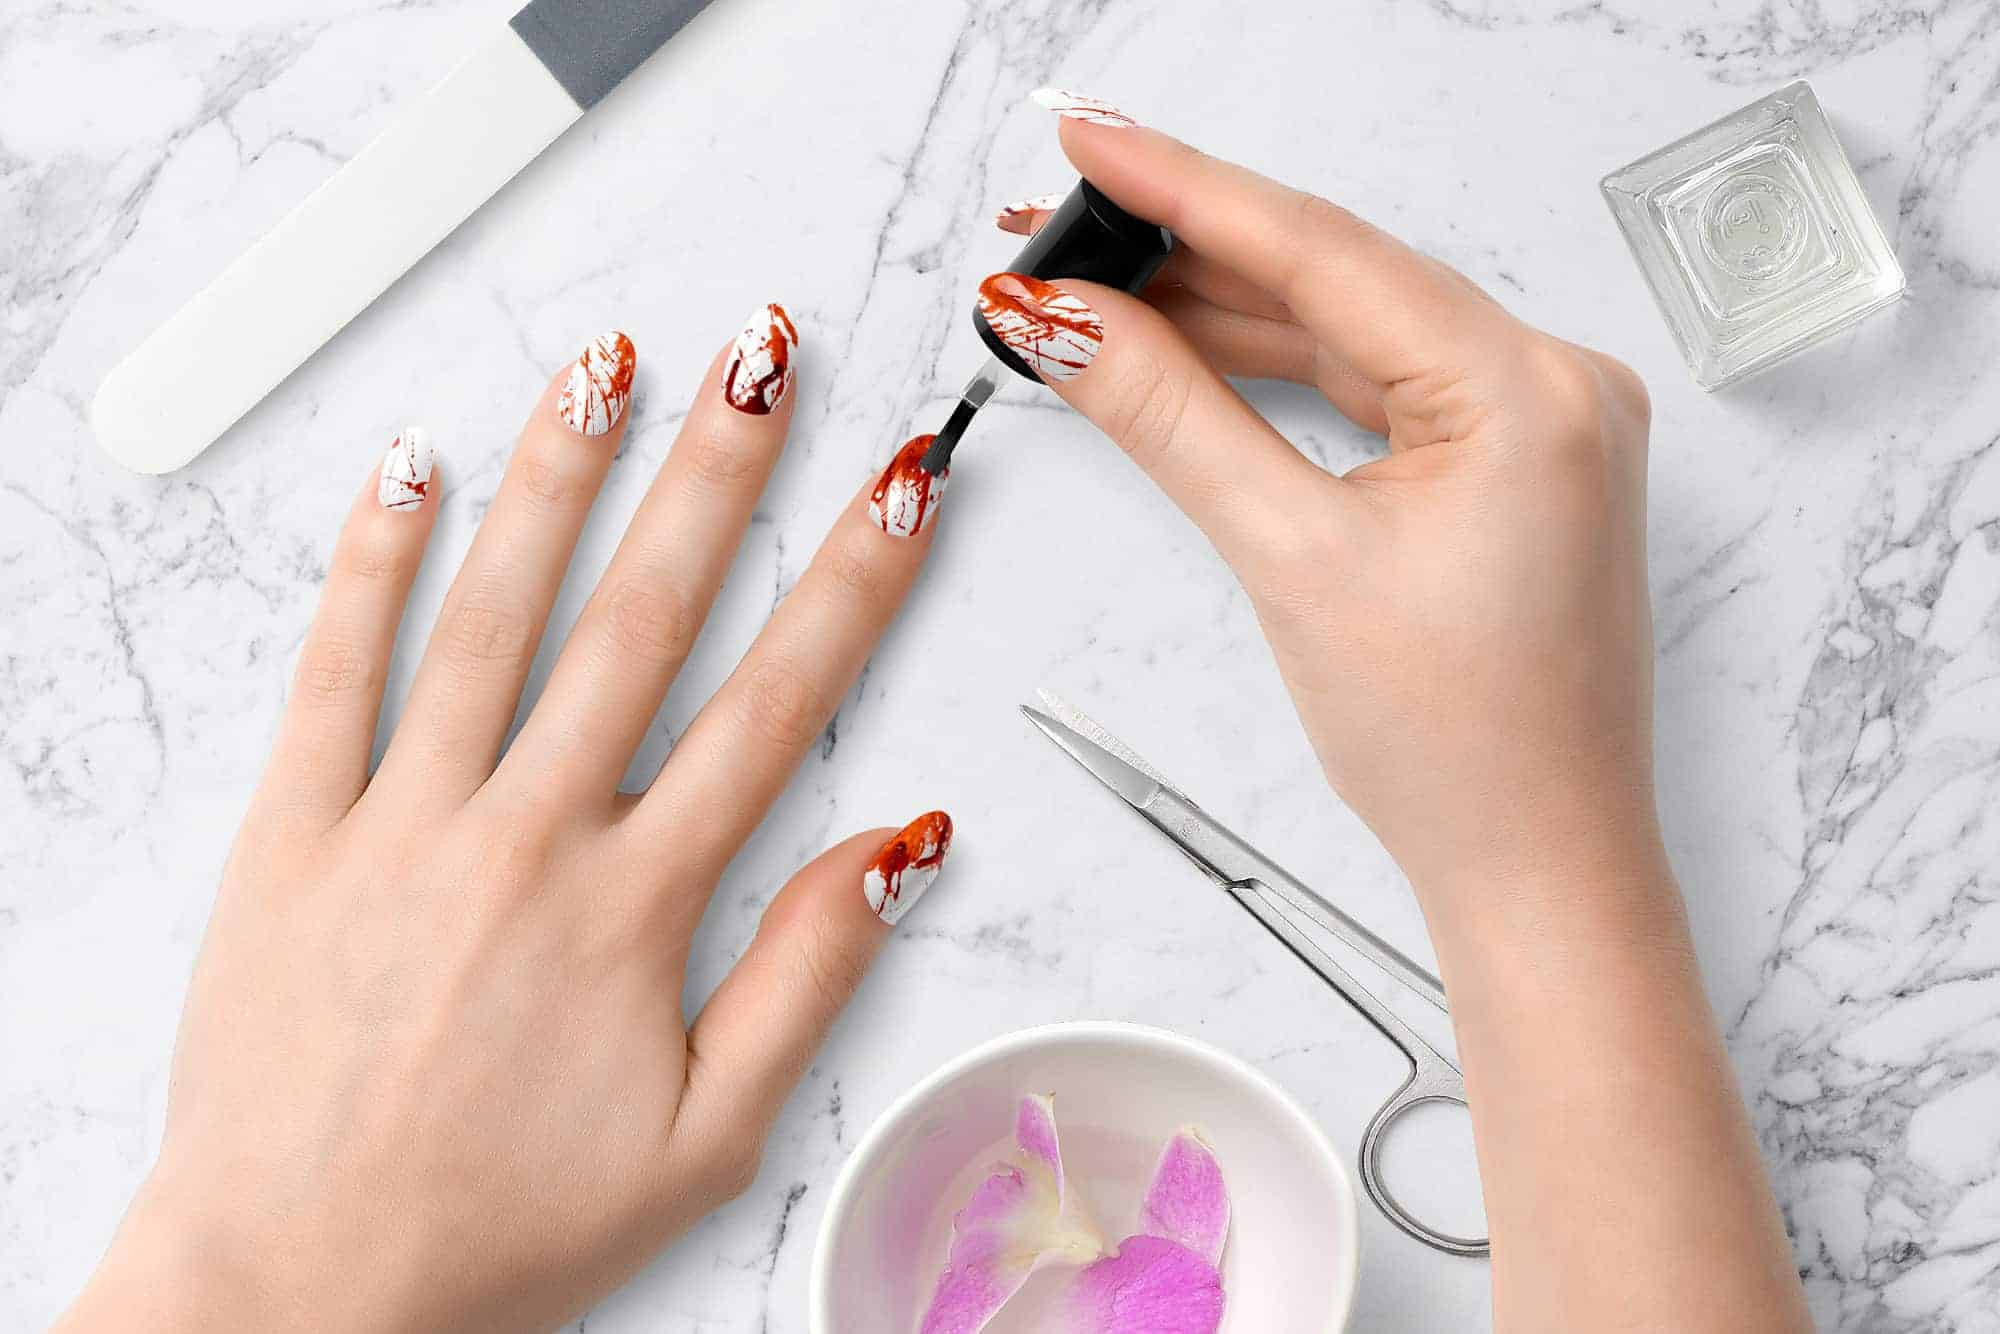 Halloween Nail Decals, Blood Splatter waterslide decal, Blood Splatter, Press On Nails Decals, Bloodstain, Nail Art, Nail Stickers